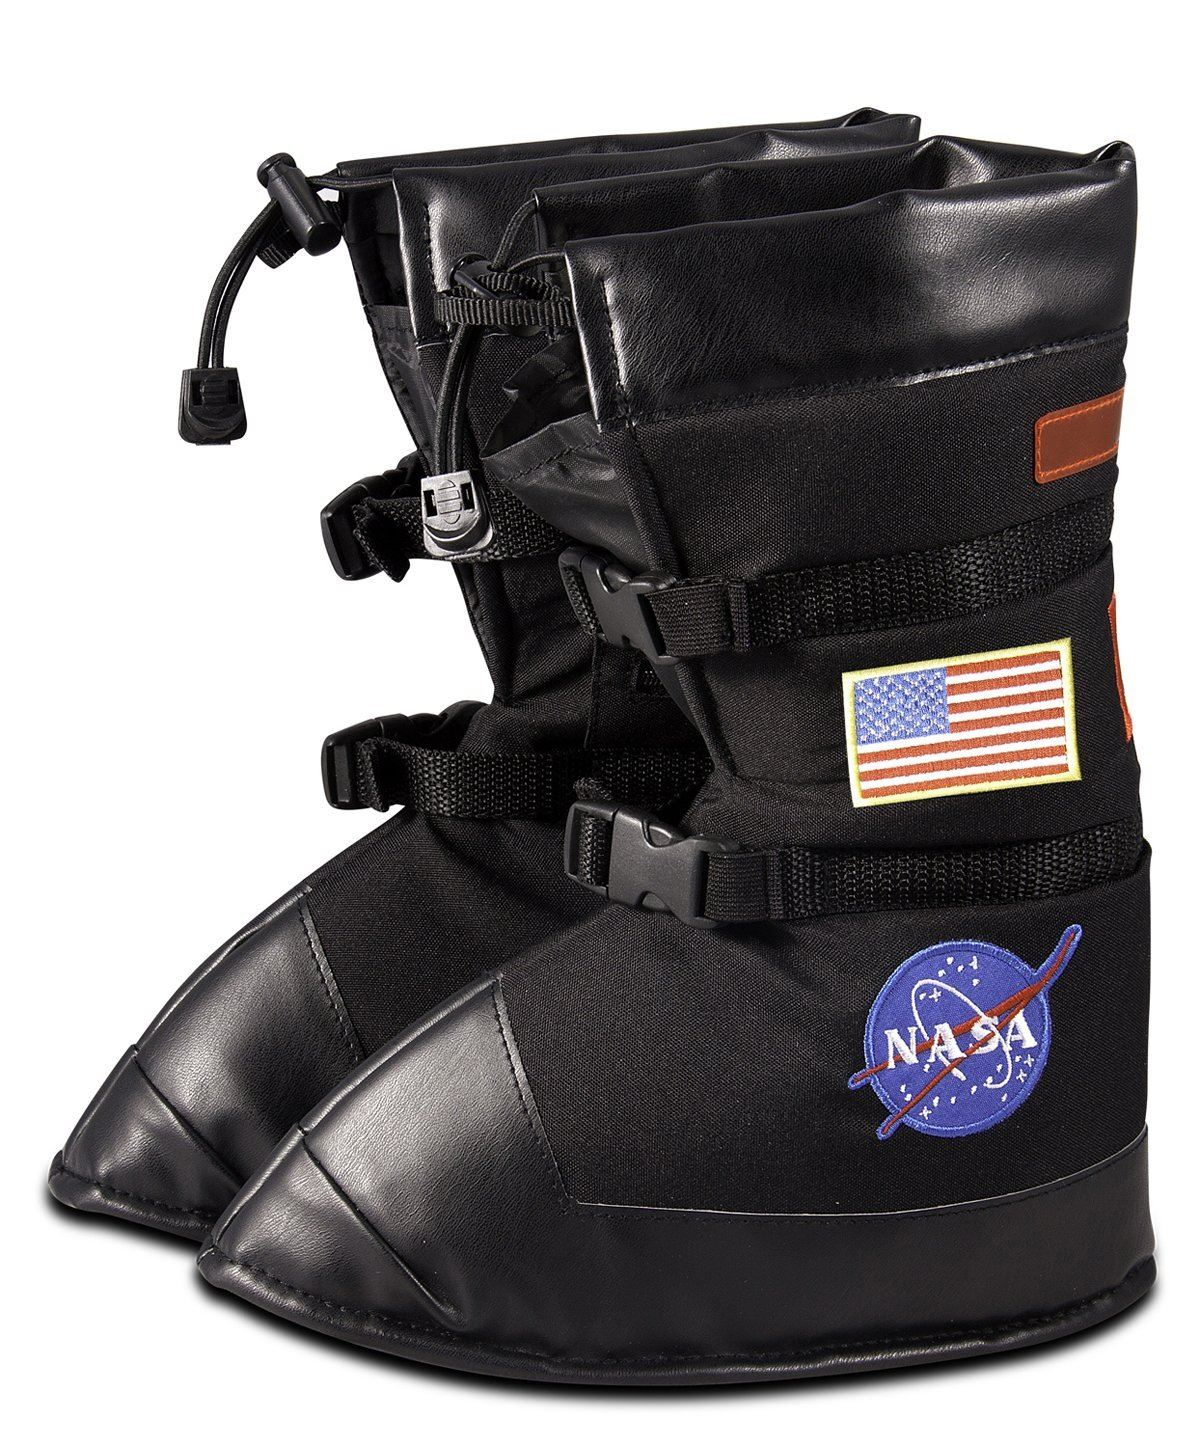 astronaut space boots - photo #1